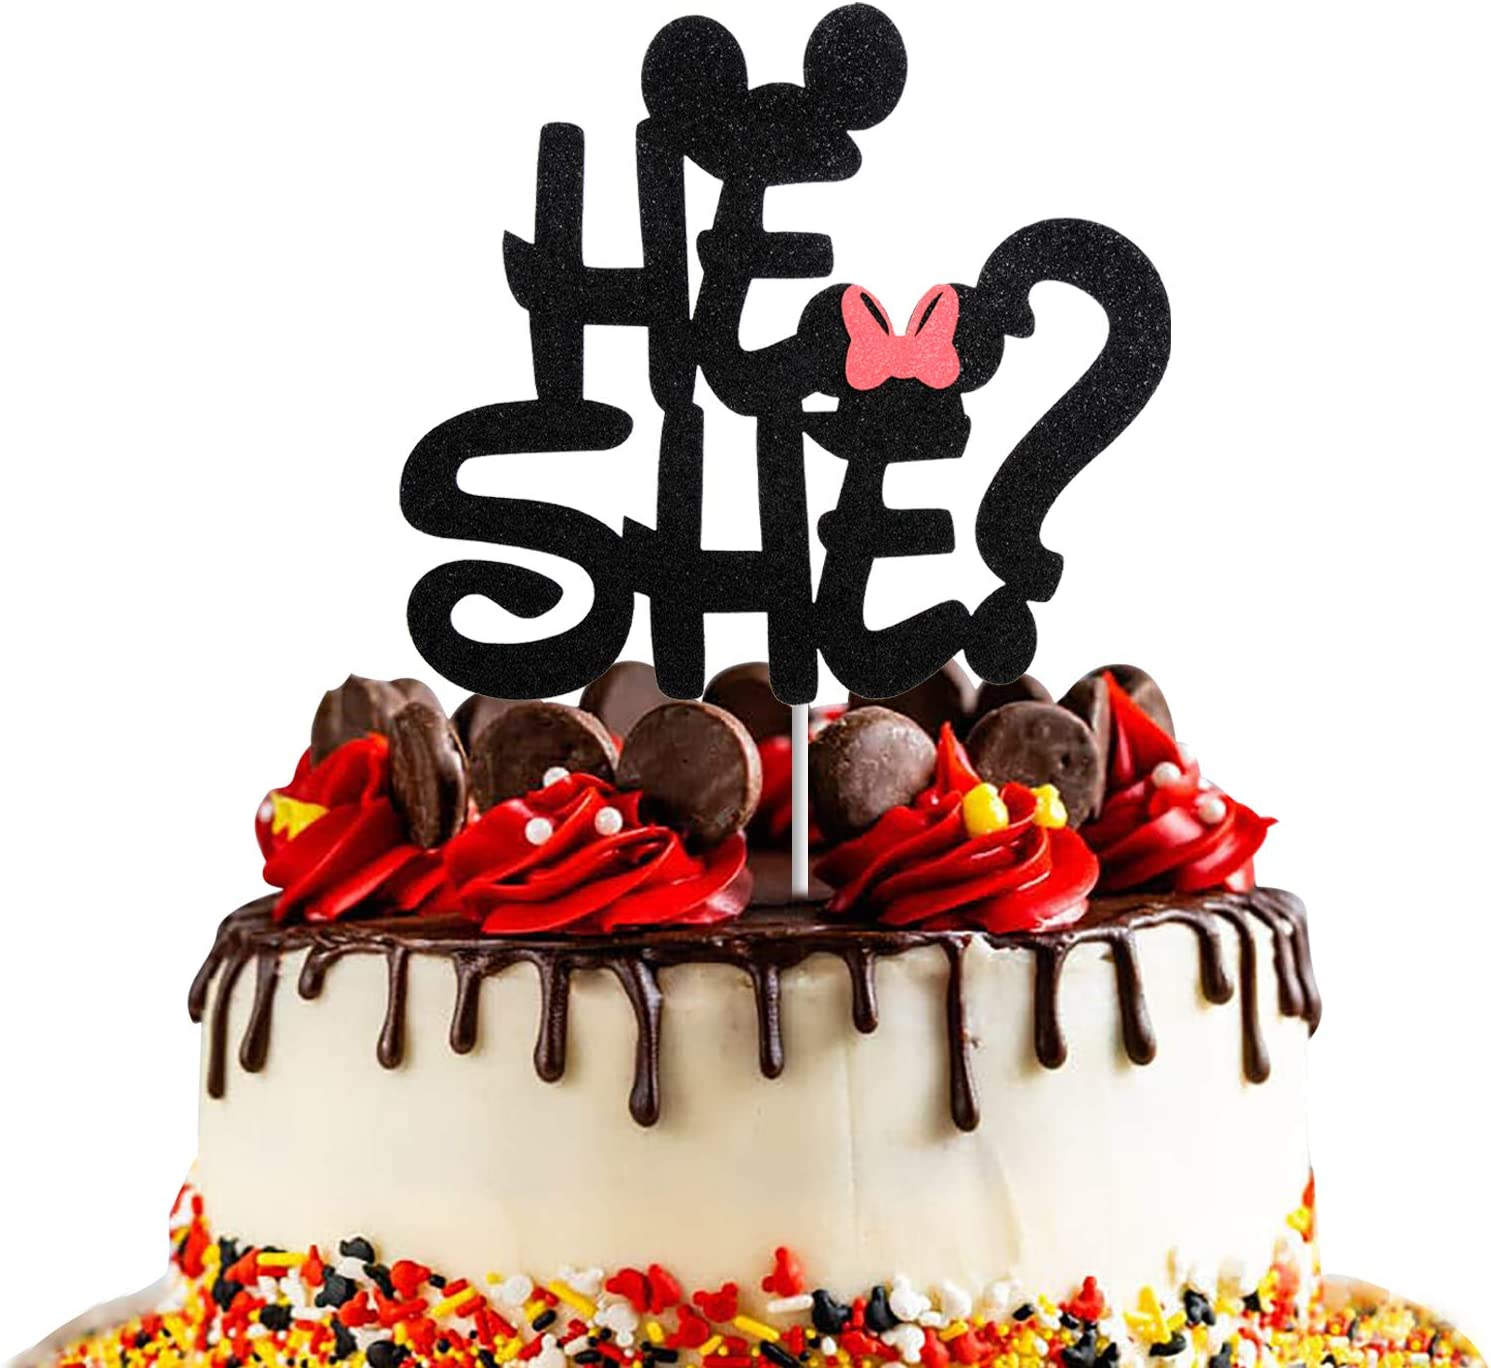 Mickey Inspired He or She Cake Topper,Black Glitter Gender Reveal Baby Shower Party Decorations for Photo Booth Props, Boy or Girl Cake Decor